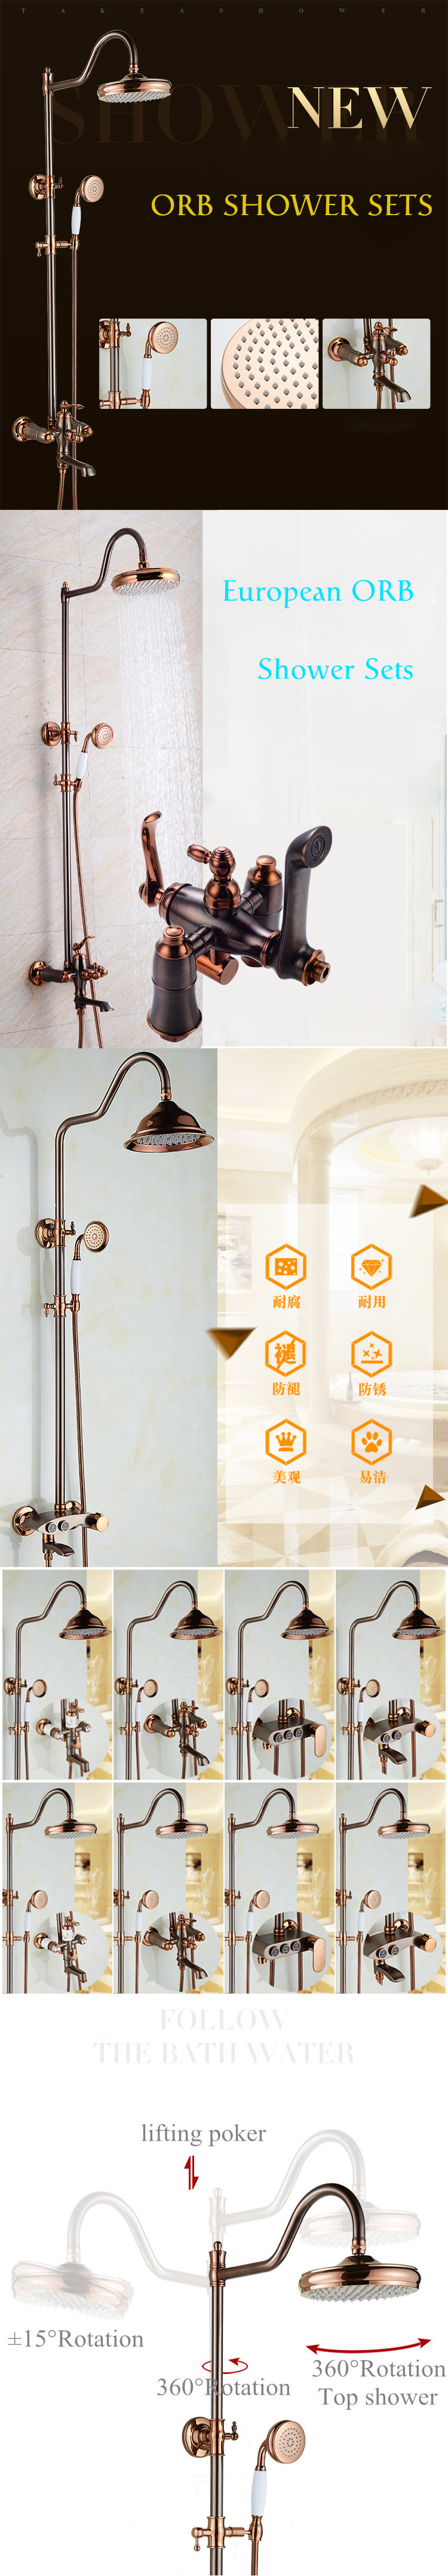 Senducs Bathroom Gold Shower Set With Cheap Price Brass Shower Set Rain Fall Shower Sets Of Quality Orb Bathroom Shower Faucet Shower System Aliexpress